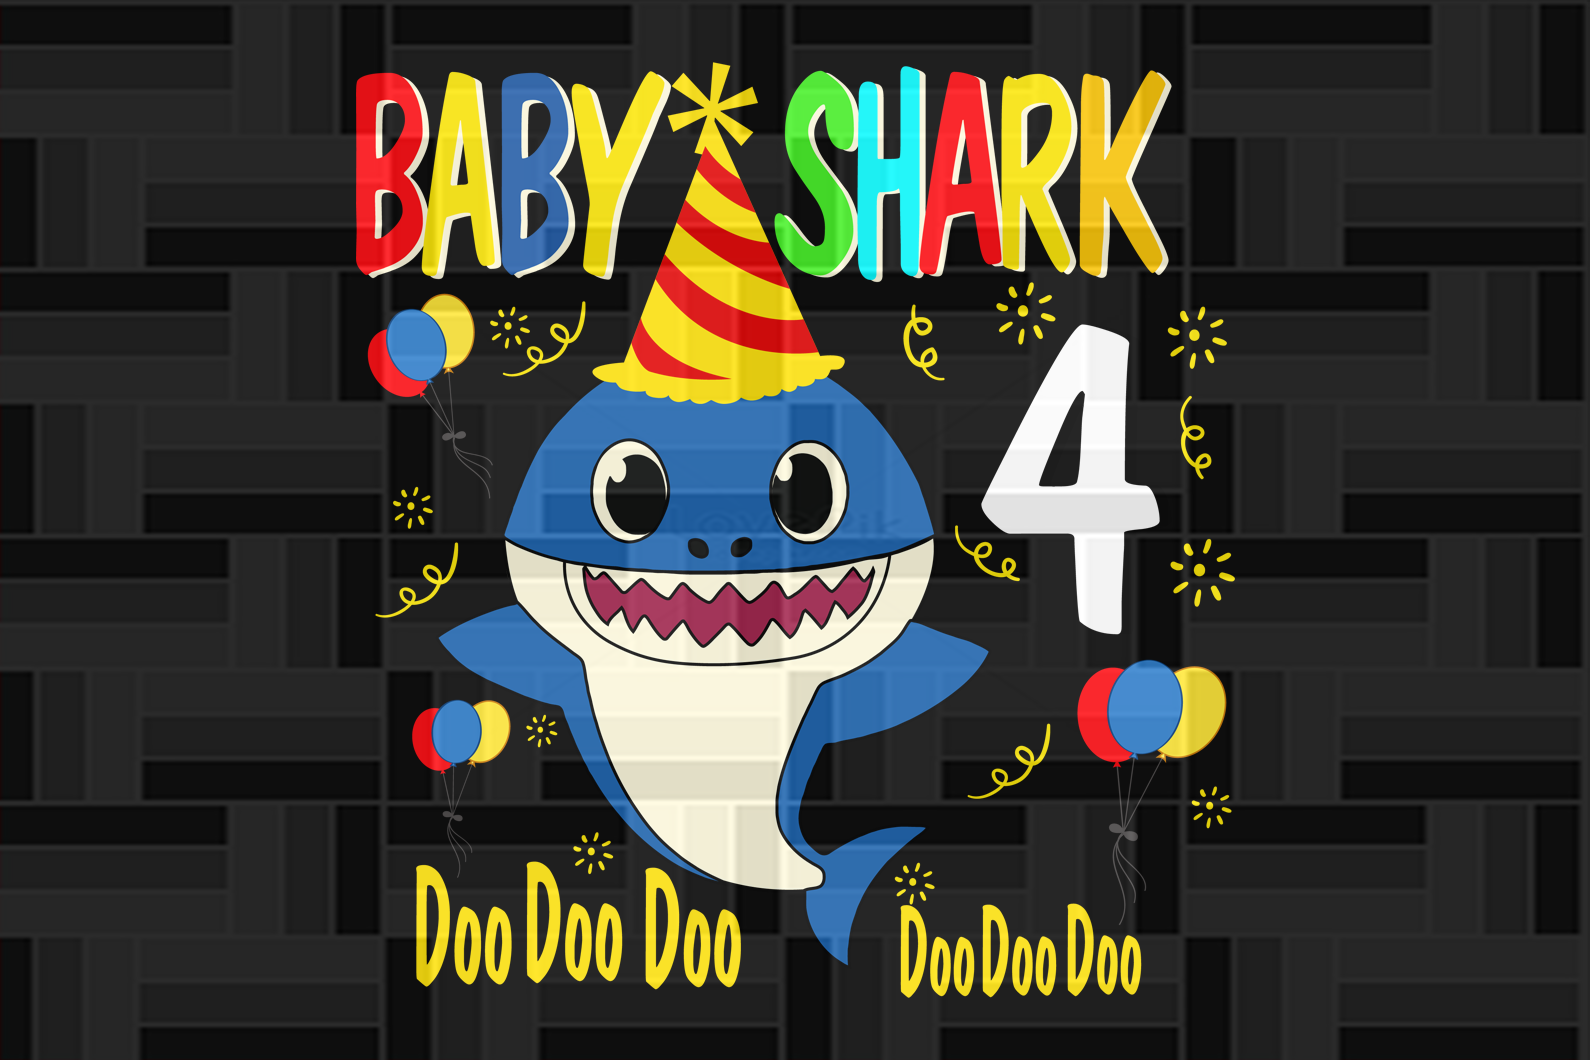 Baby shark four doo doo, born in 2016, 2015 svg, 4th birthday svg, 4th birthday gift, 4th birthday shirt, birthday anniversary, birthday party, shark svg, shark silhouette, cute shark, gift for kids, gift from parents, digital file, vinyl for cricut,